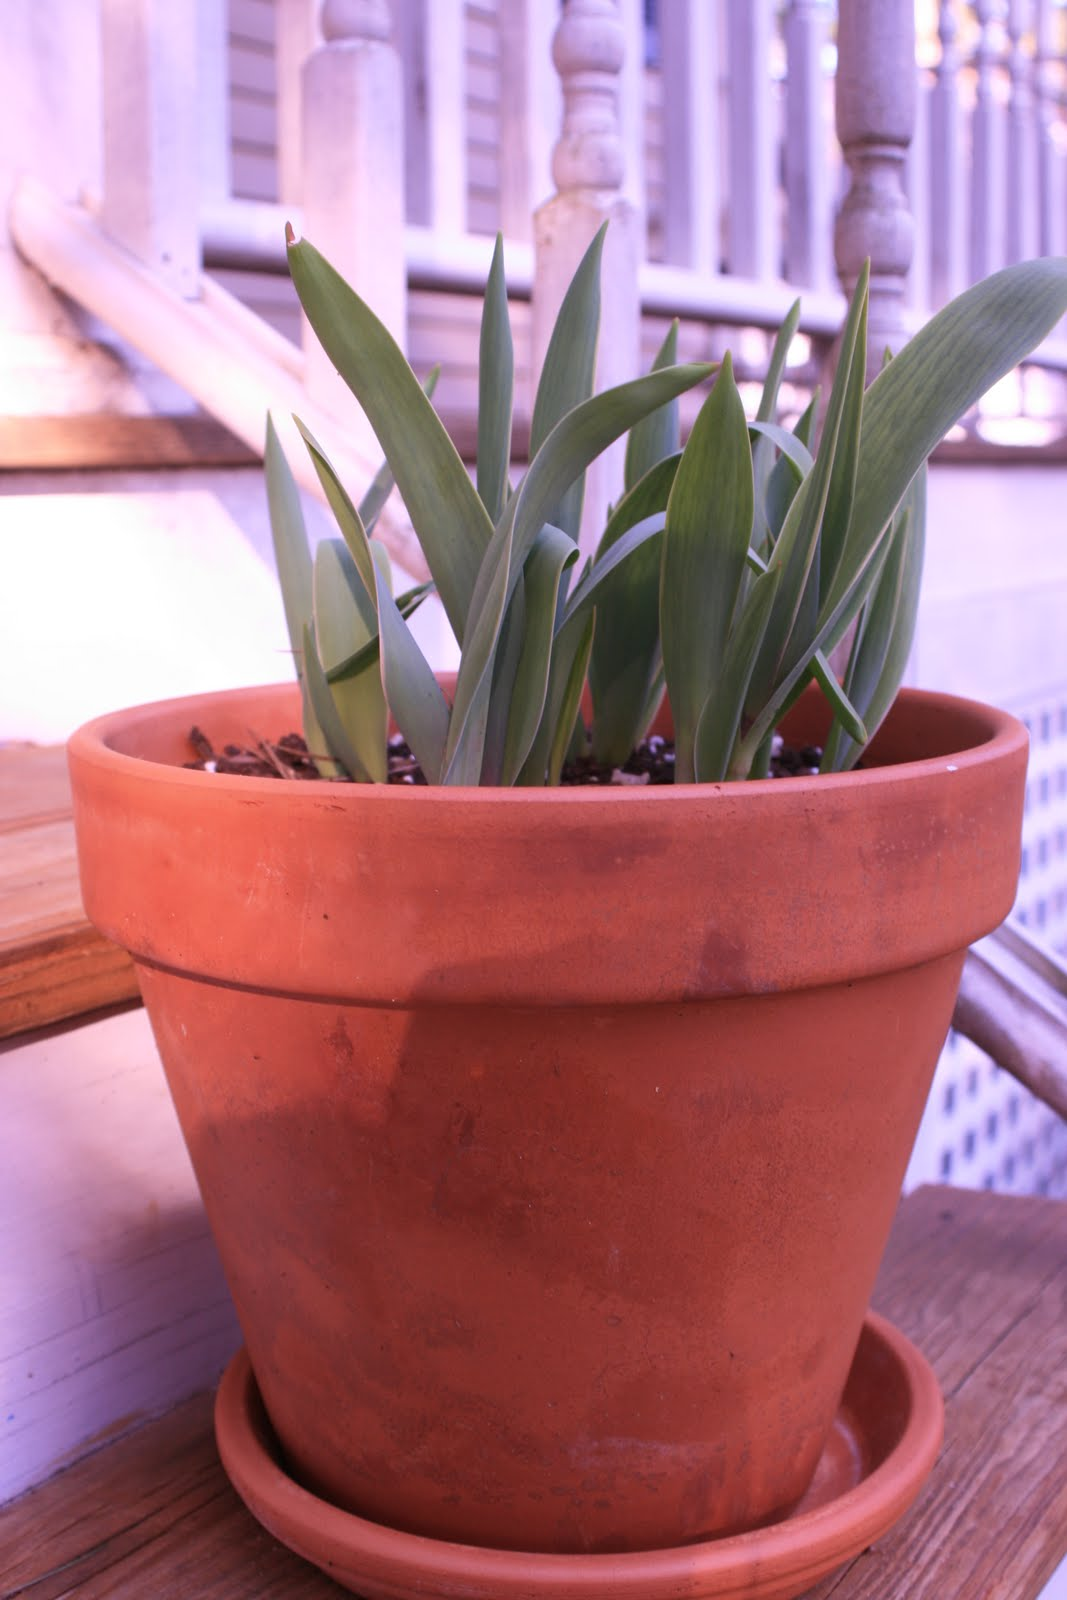 nearly budding tulips that my ever so thoughtful husband bought me